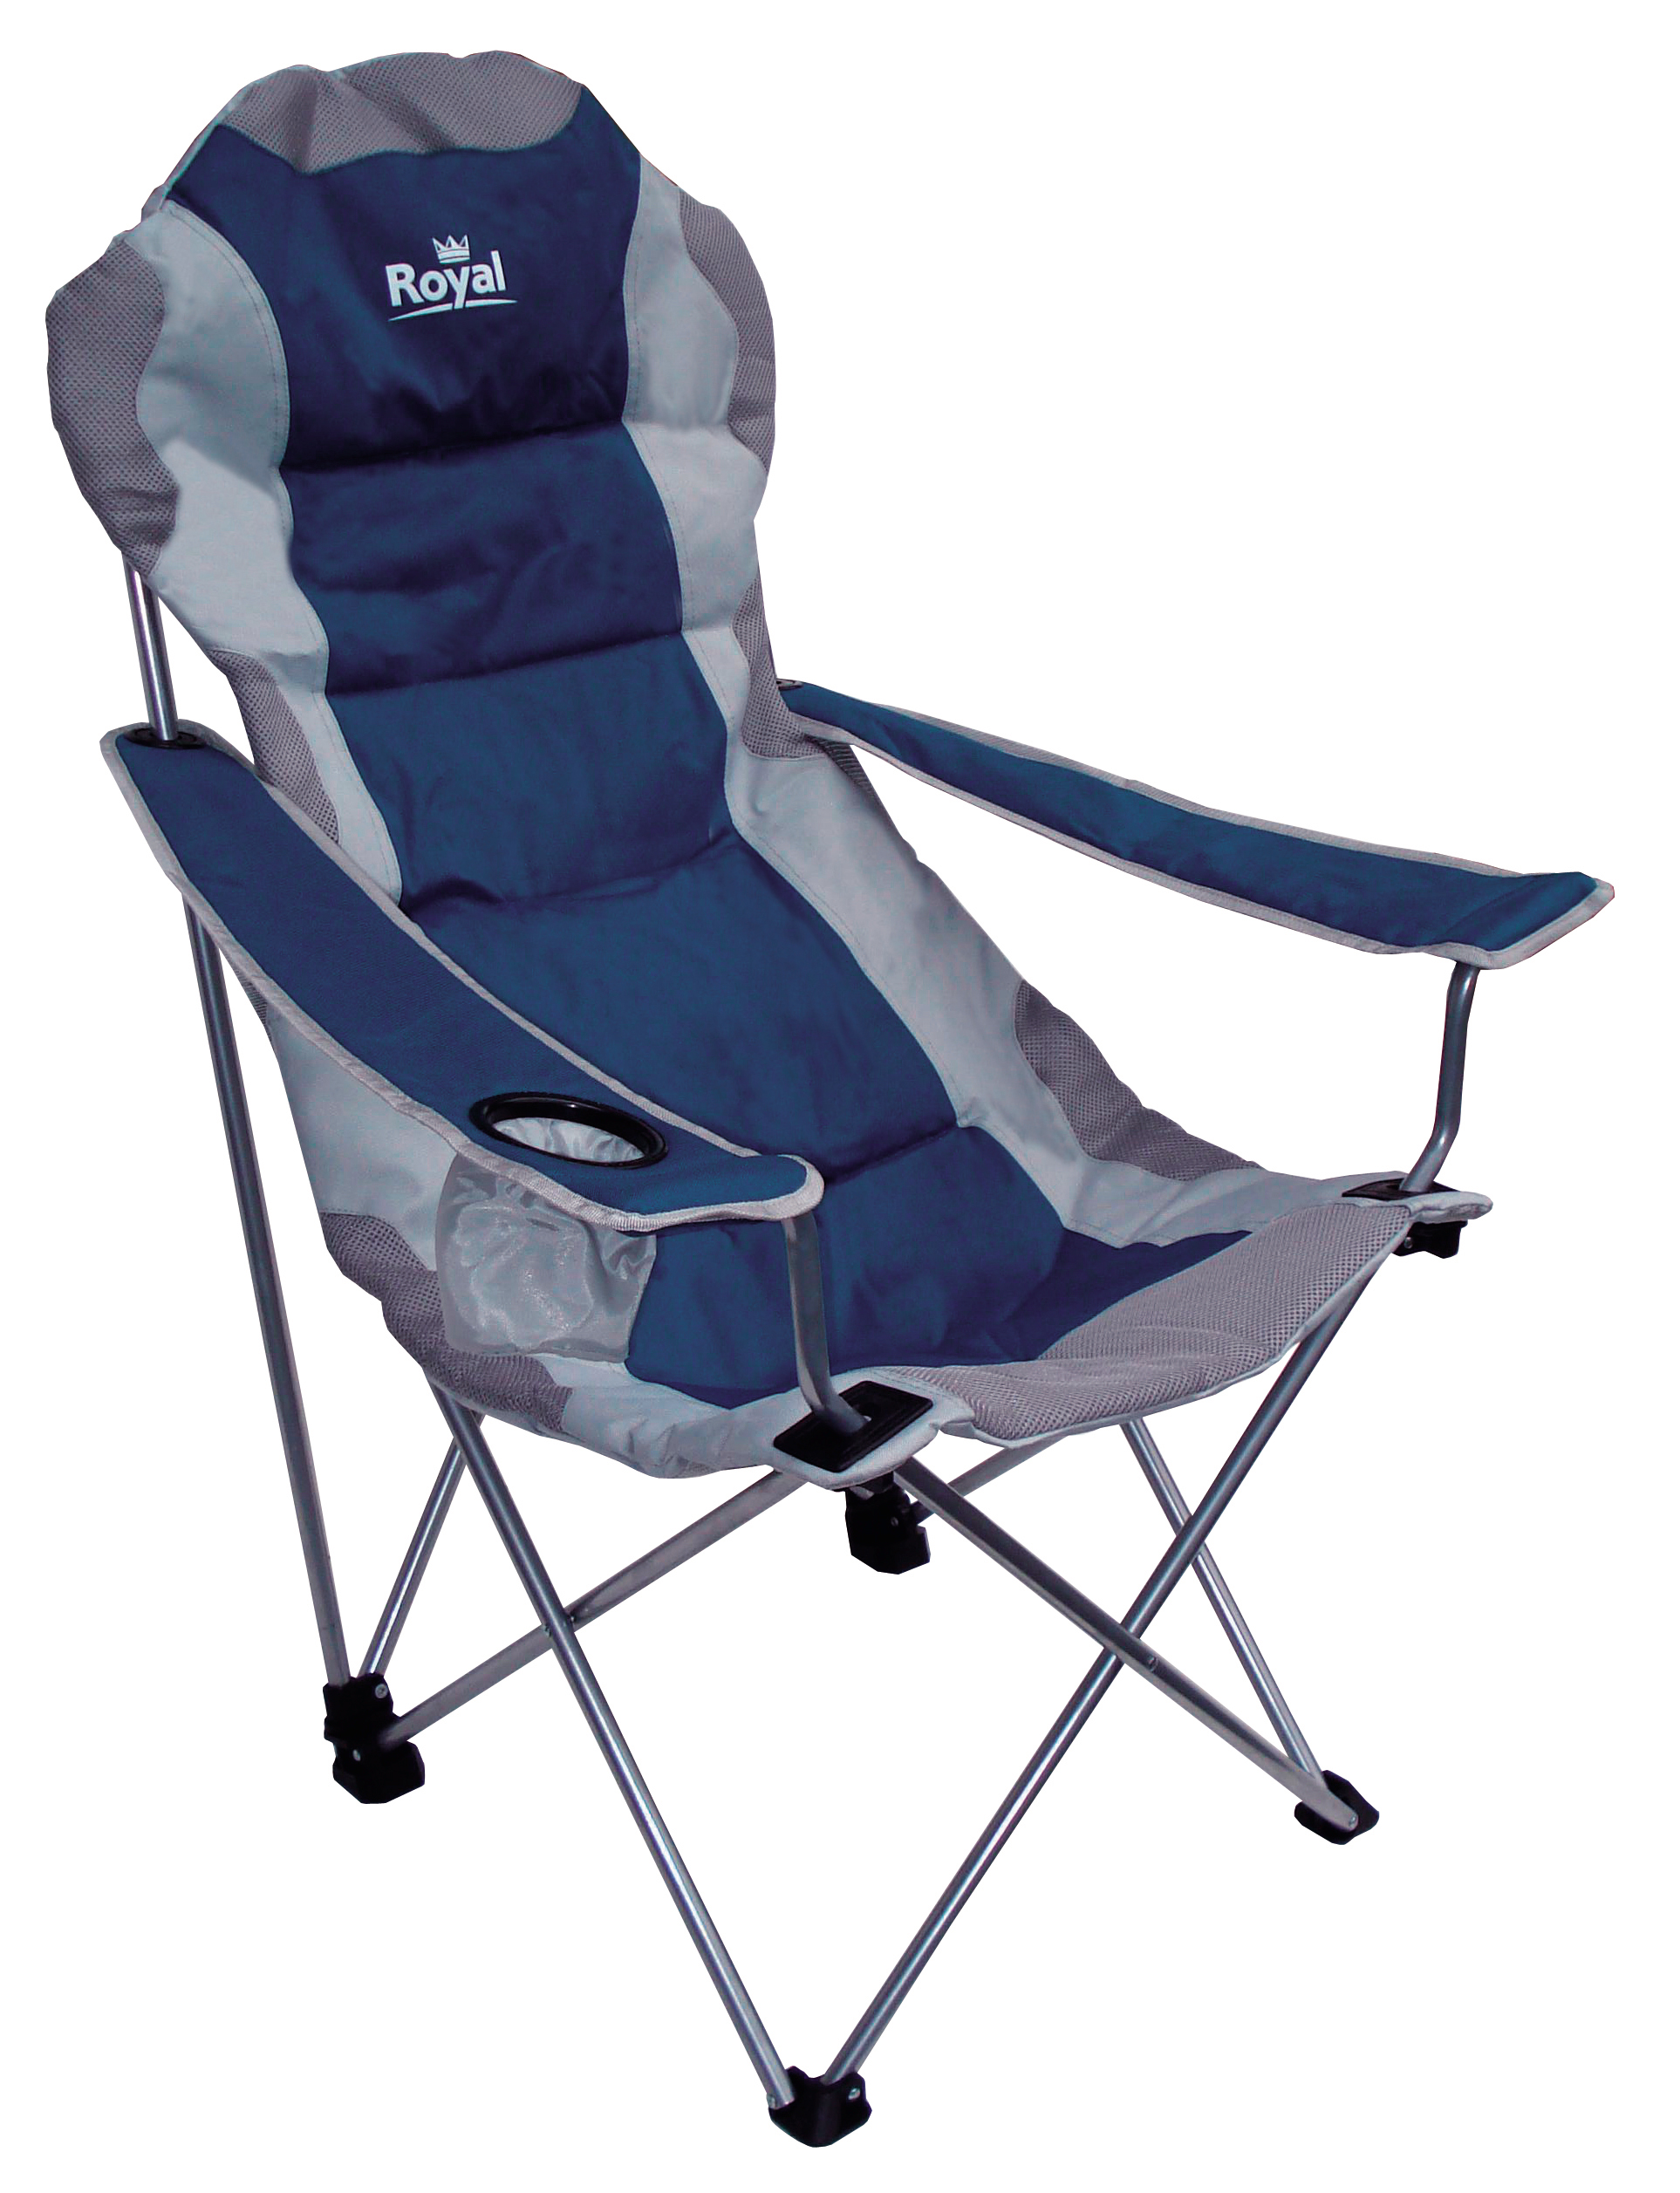 Royal Adjustable Folding Chair 120KG Capacity 3 Position Blue